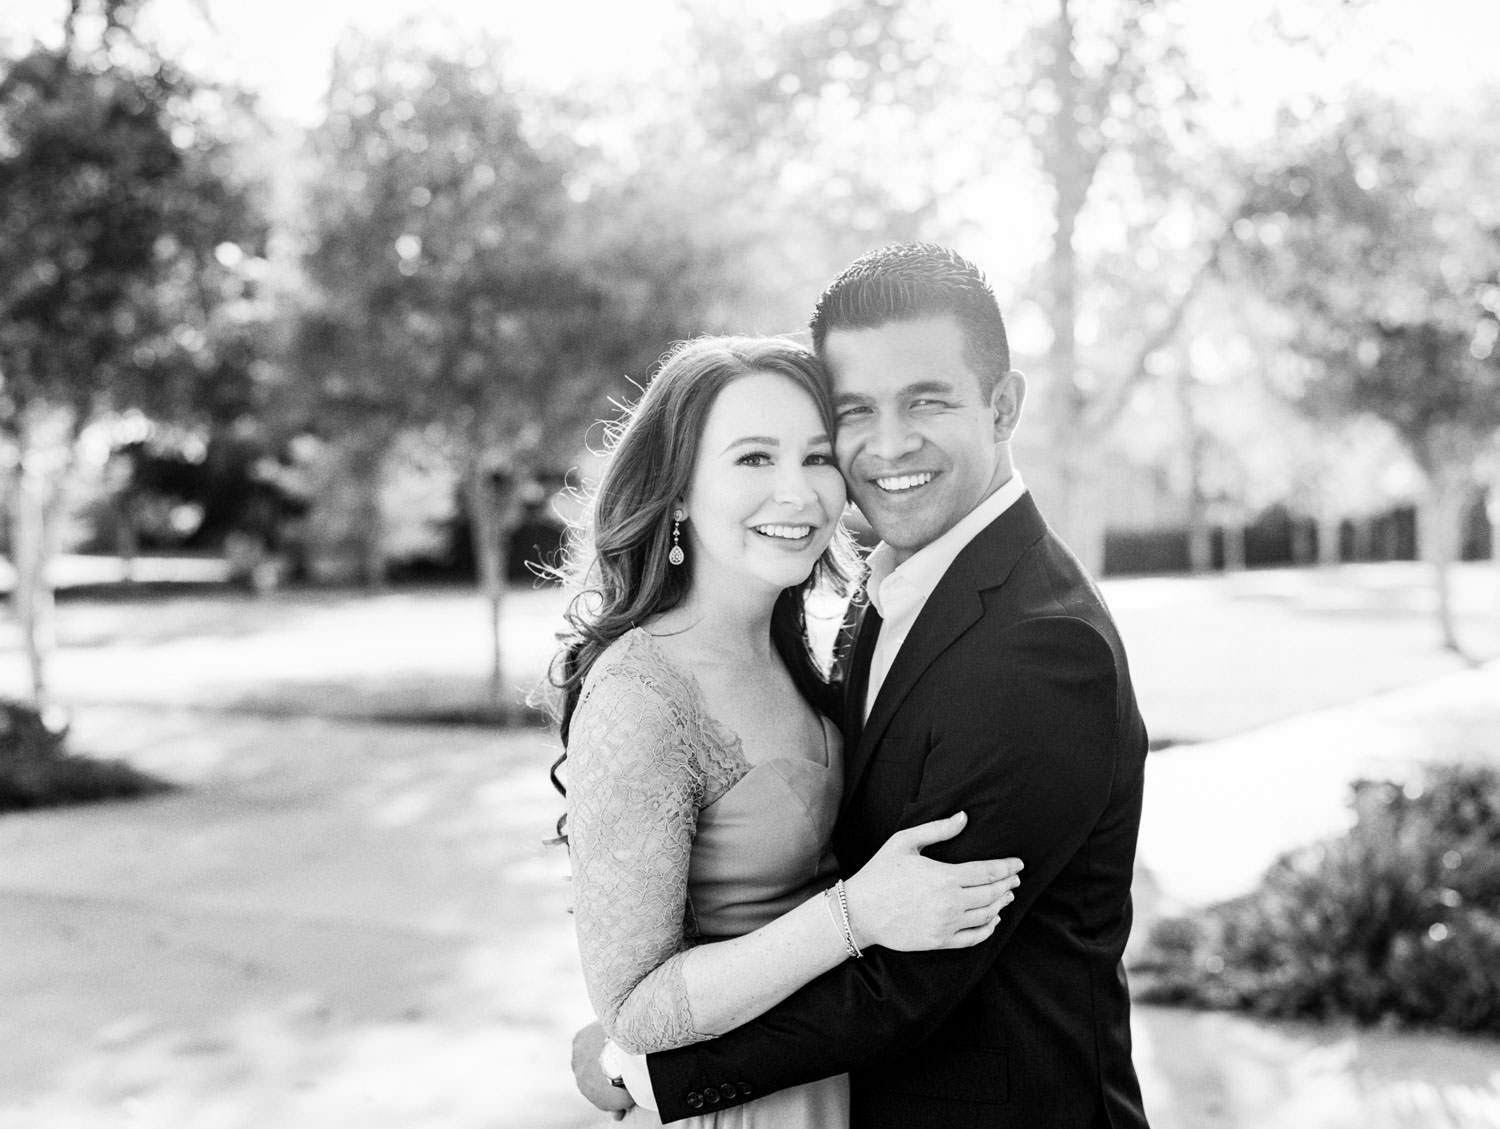 UC Riverside Engagement session. Bride in long blush lavender dress and groom in navy suit captured on black and white. Film photographer Cavin Elizabeth Photography.